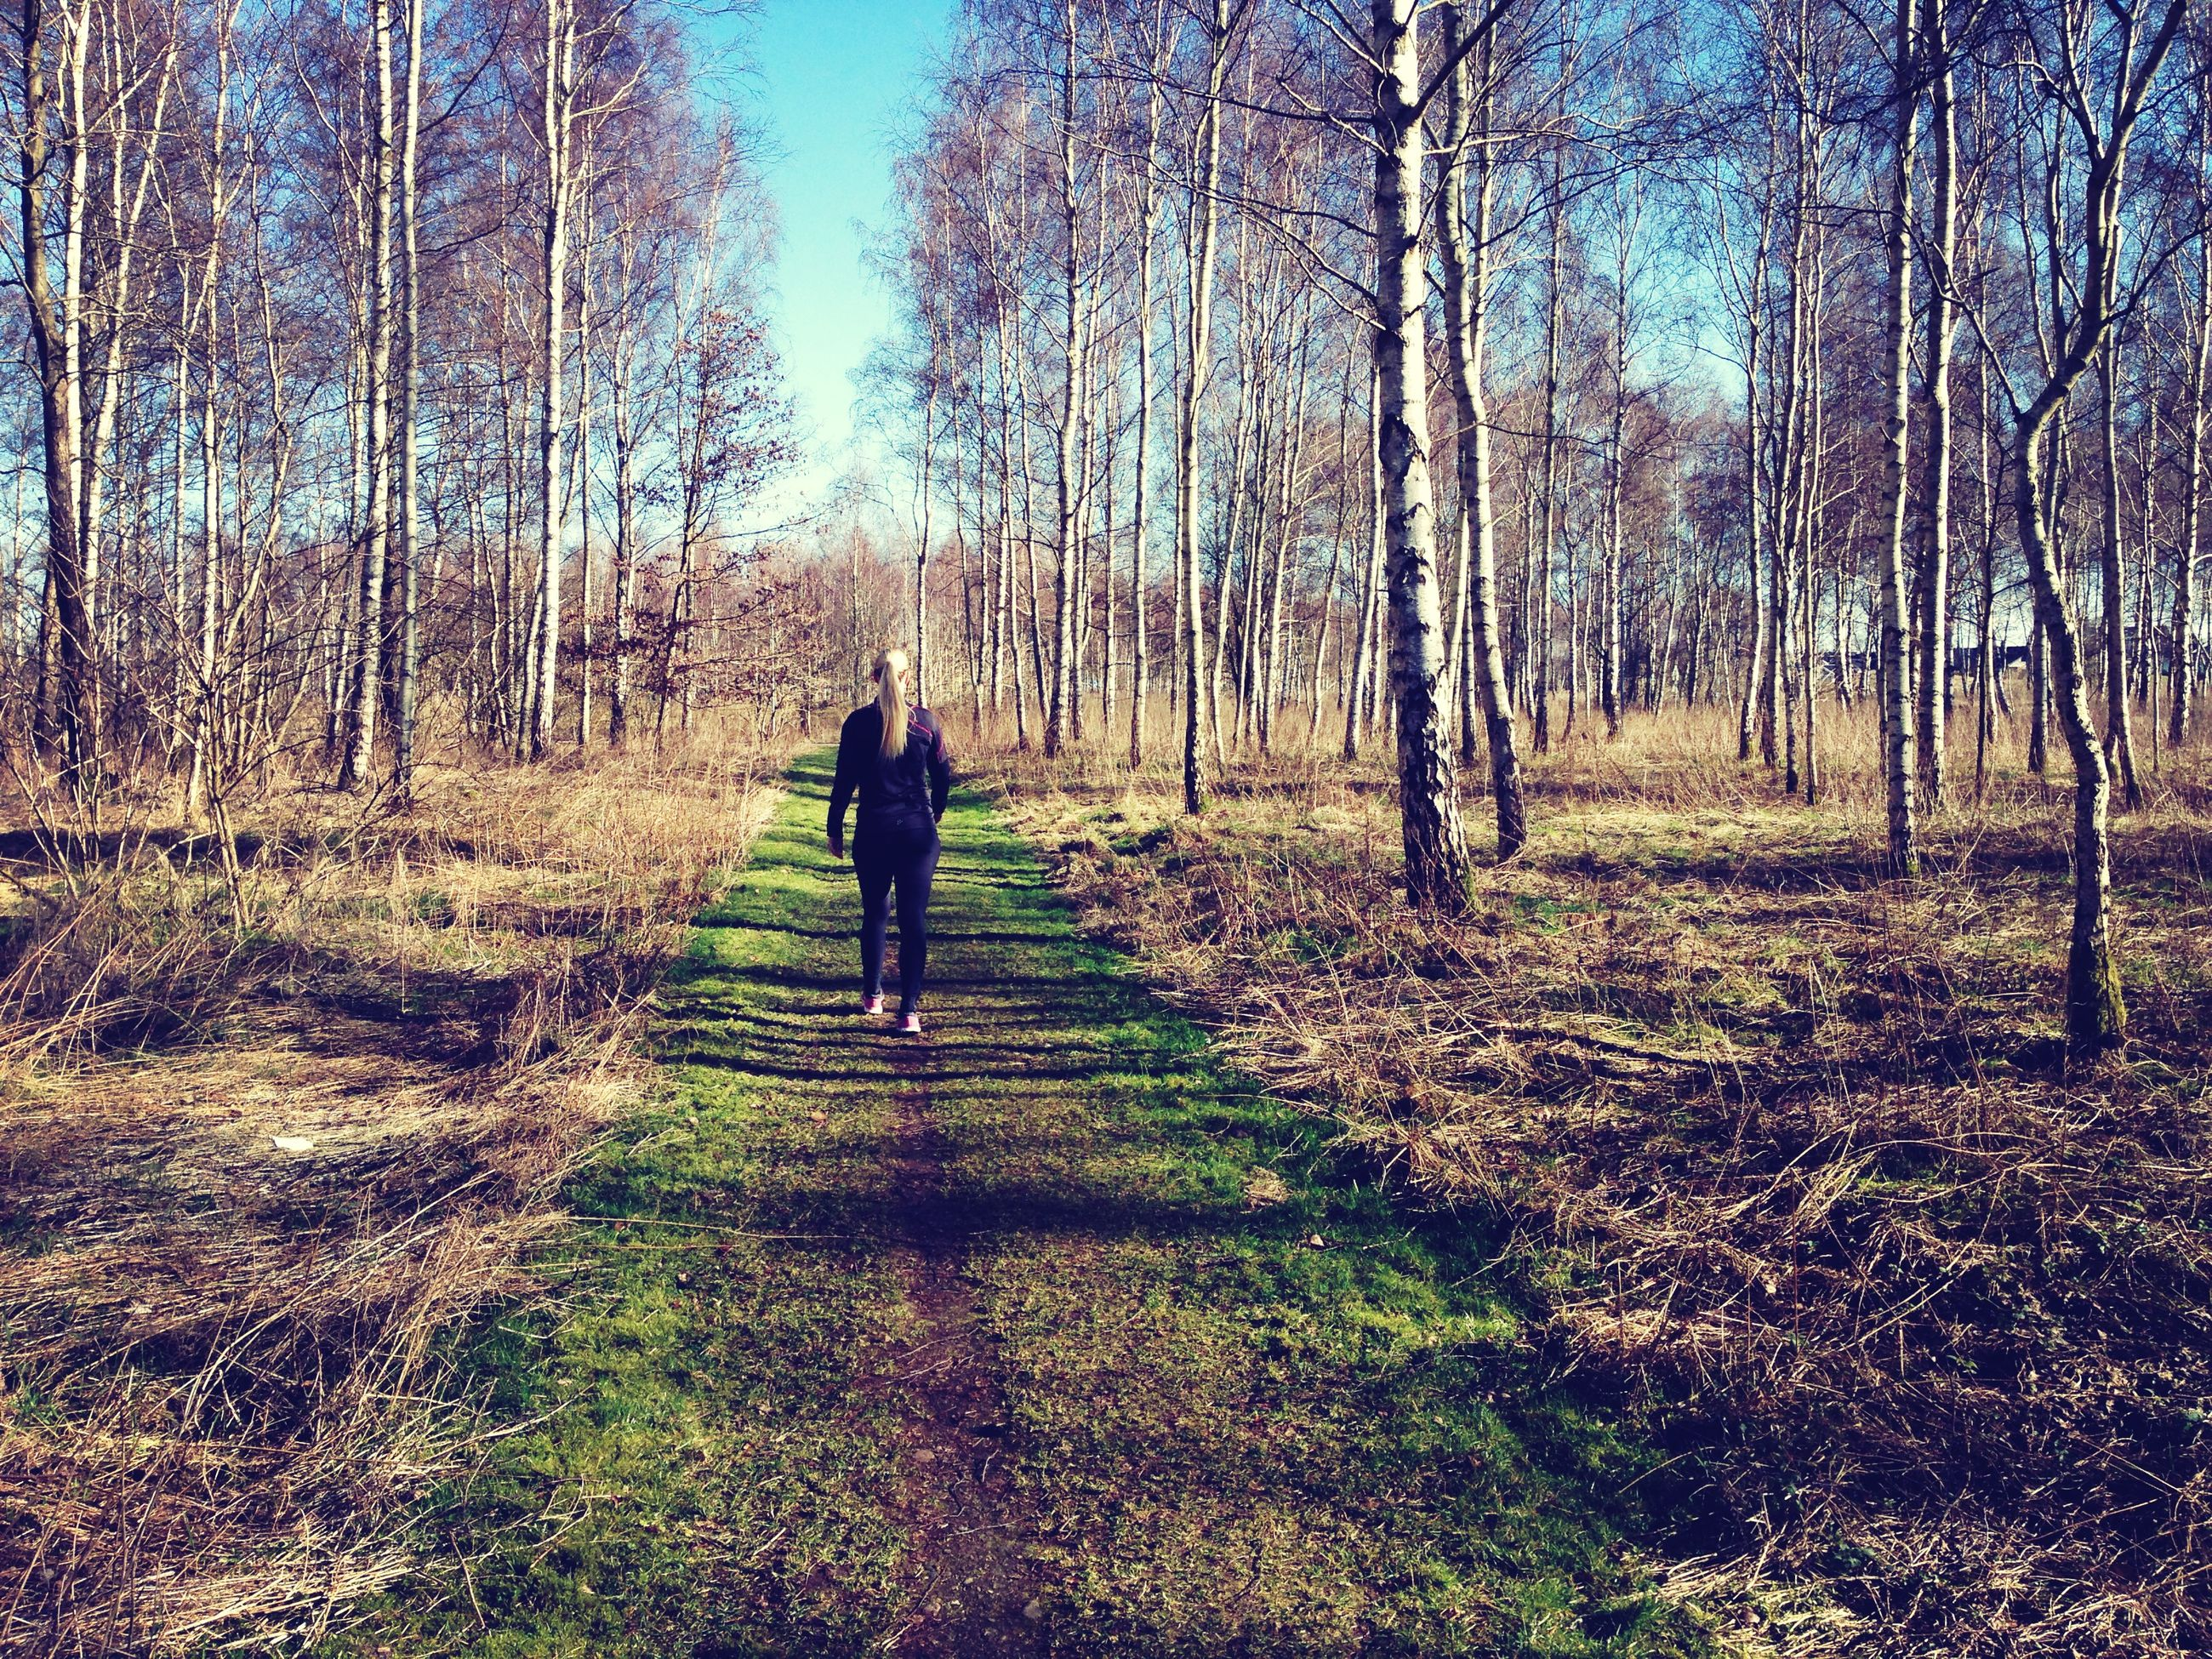 tree, rear view, walking, full length, lifestyles, leisure activity, tranquility, forest, the way forward, men, nature, standing, growth, tranquil scene, grass, landscape, tree trunk, person